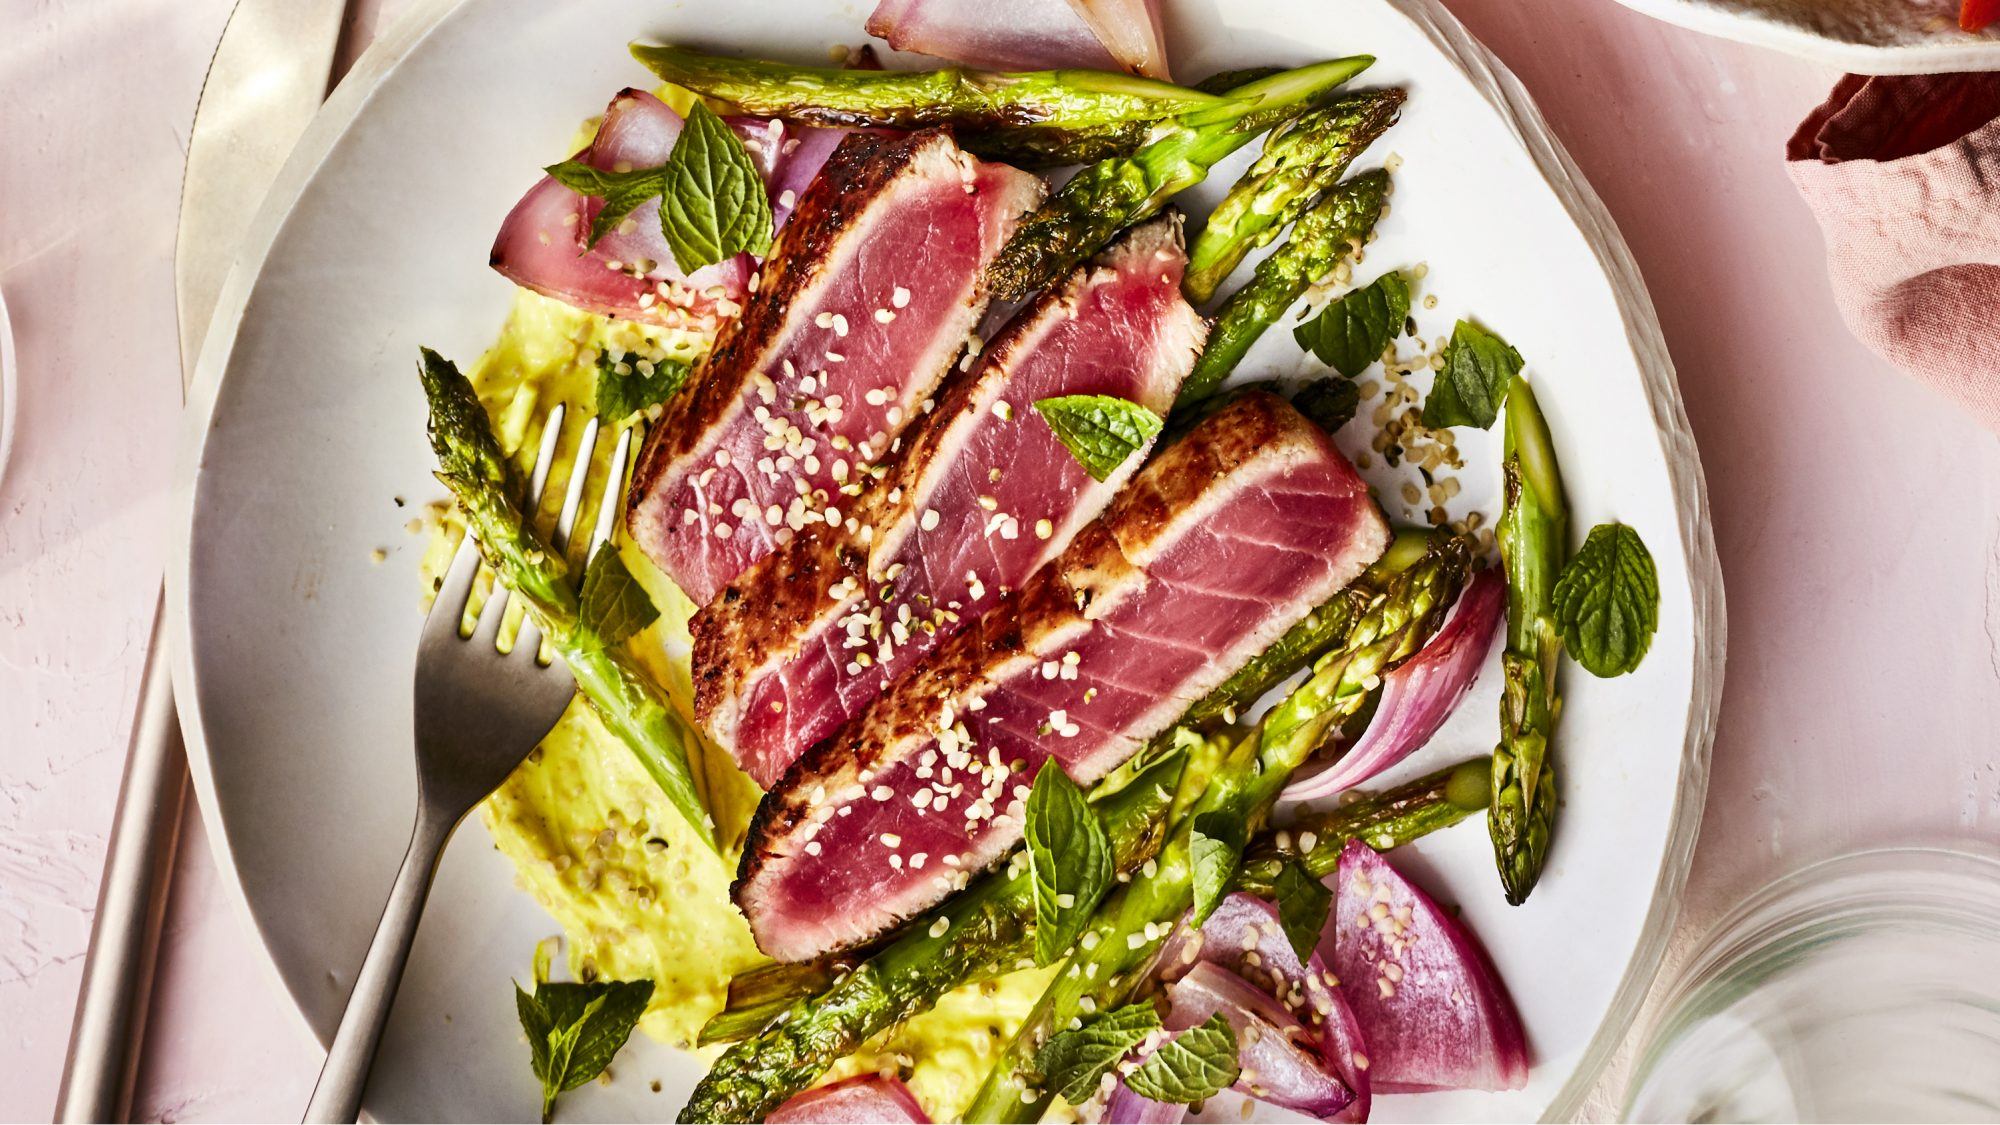 MARCH 2019 health magazine woman diet food recipe  TUNA STEAKS WITH TURMERIC DRESSING